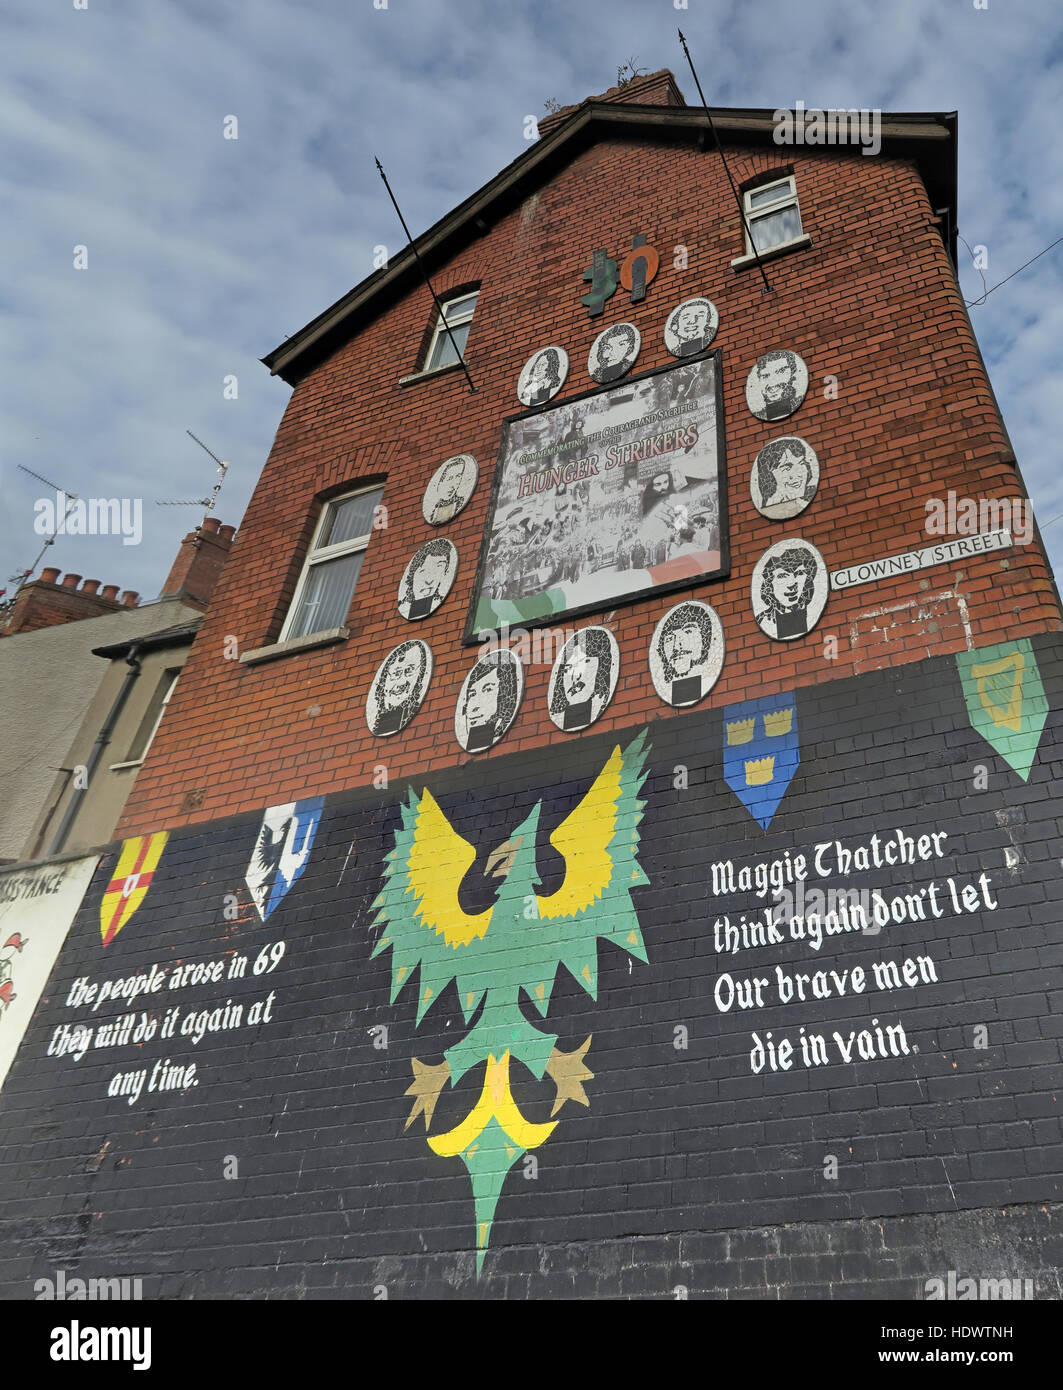 Belfast Falls Rd Republican Mural Clowney St, Hunger Strikers, Maggie Thatcher think again.. - Stock Image